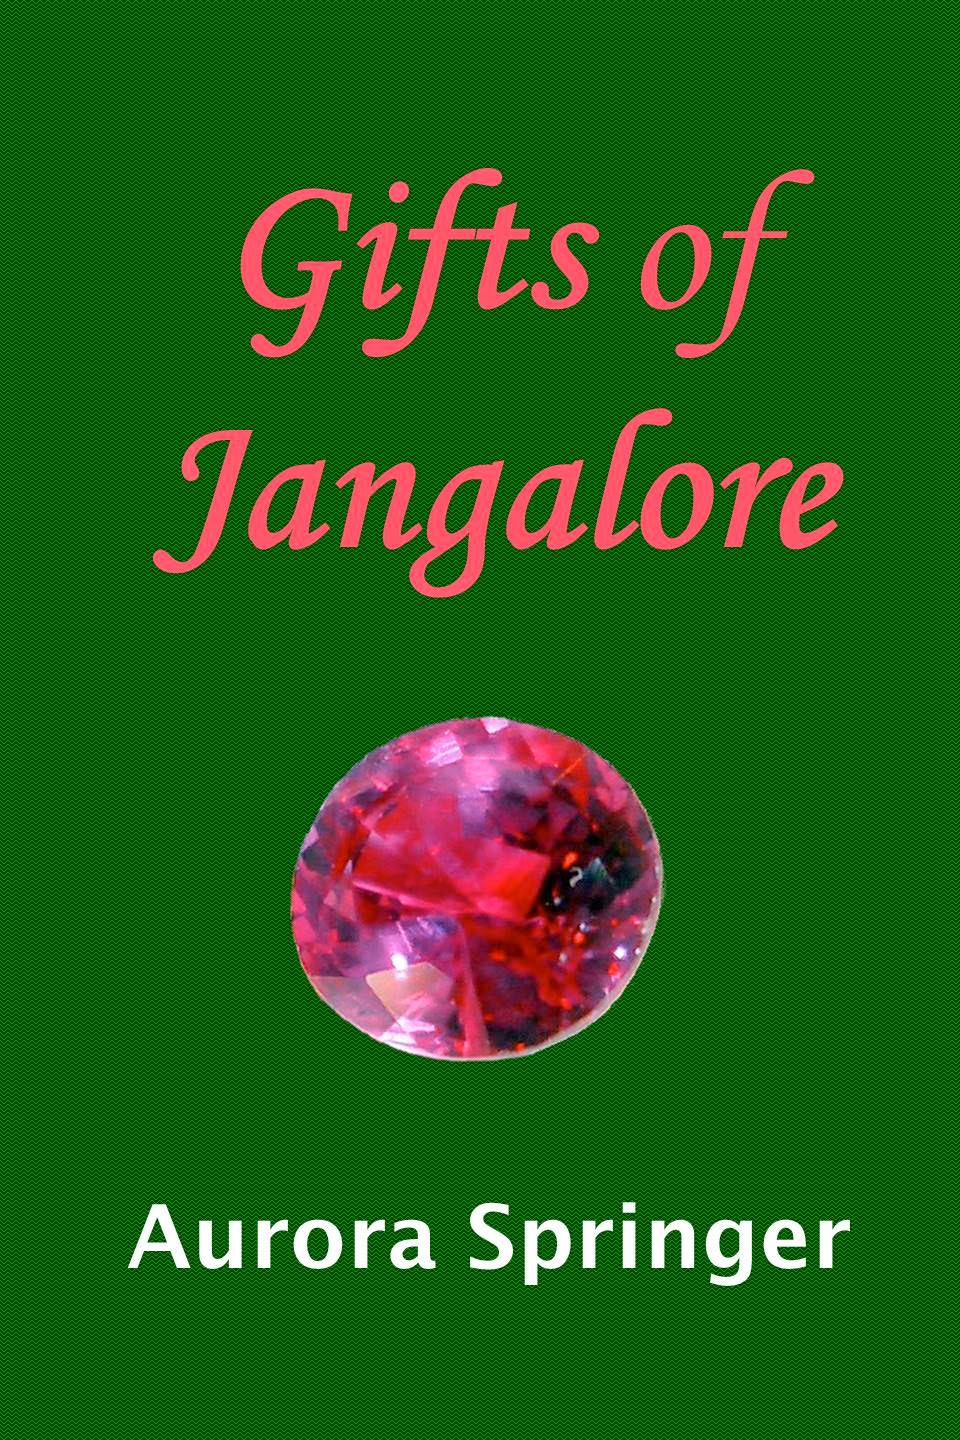 Gifts of Jangalore